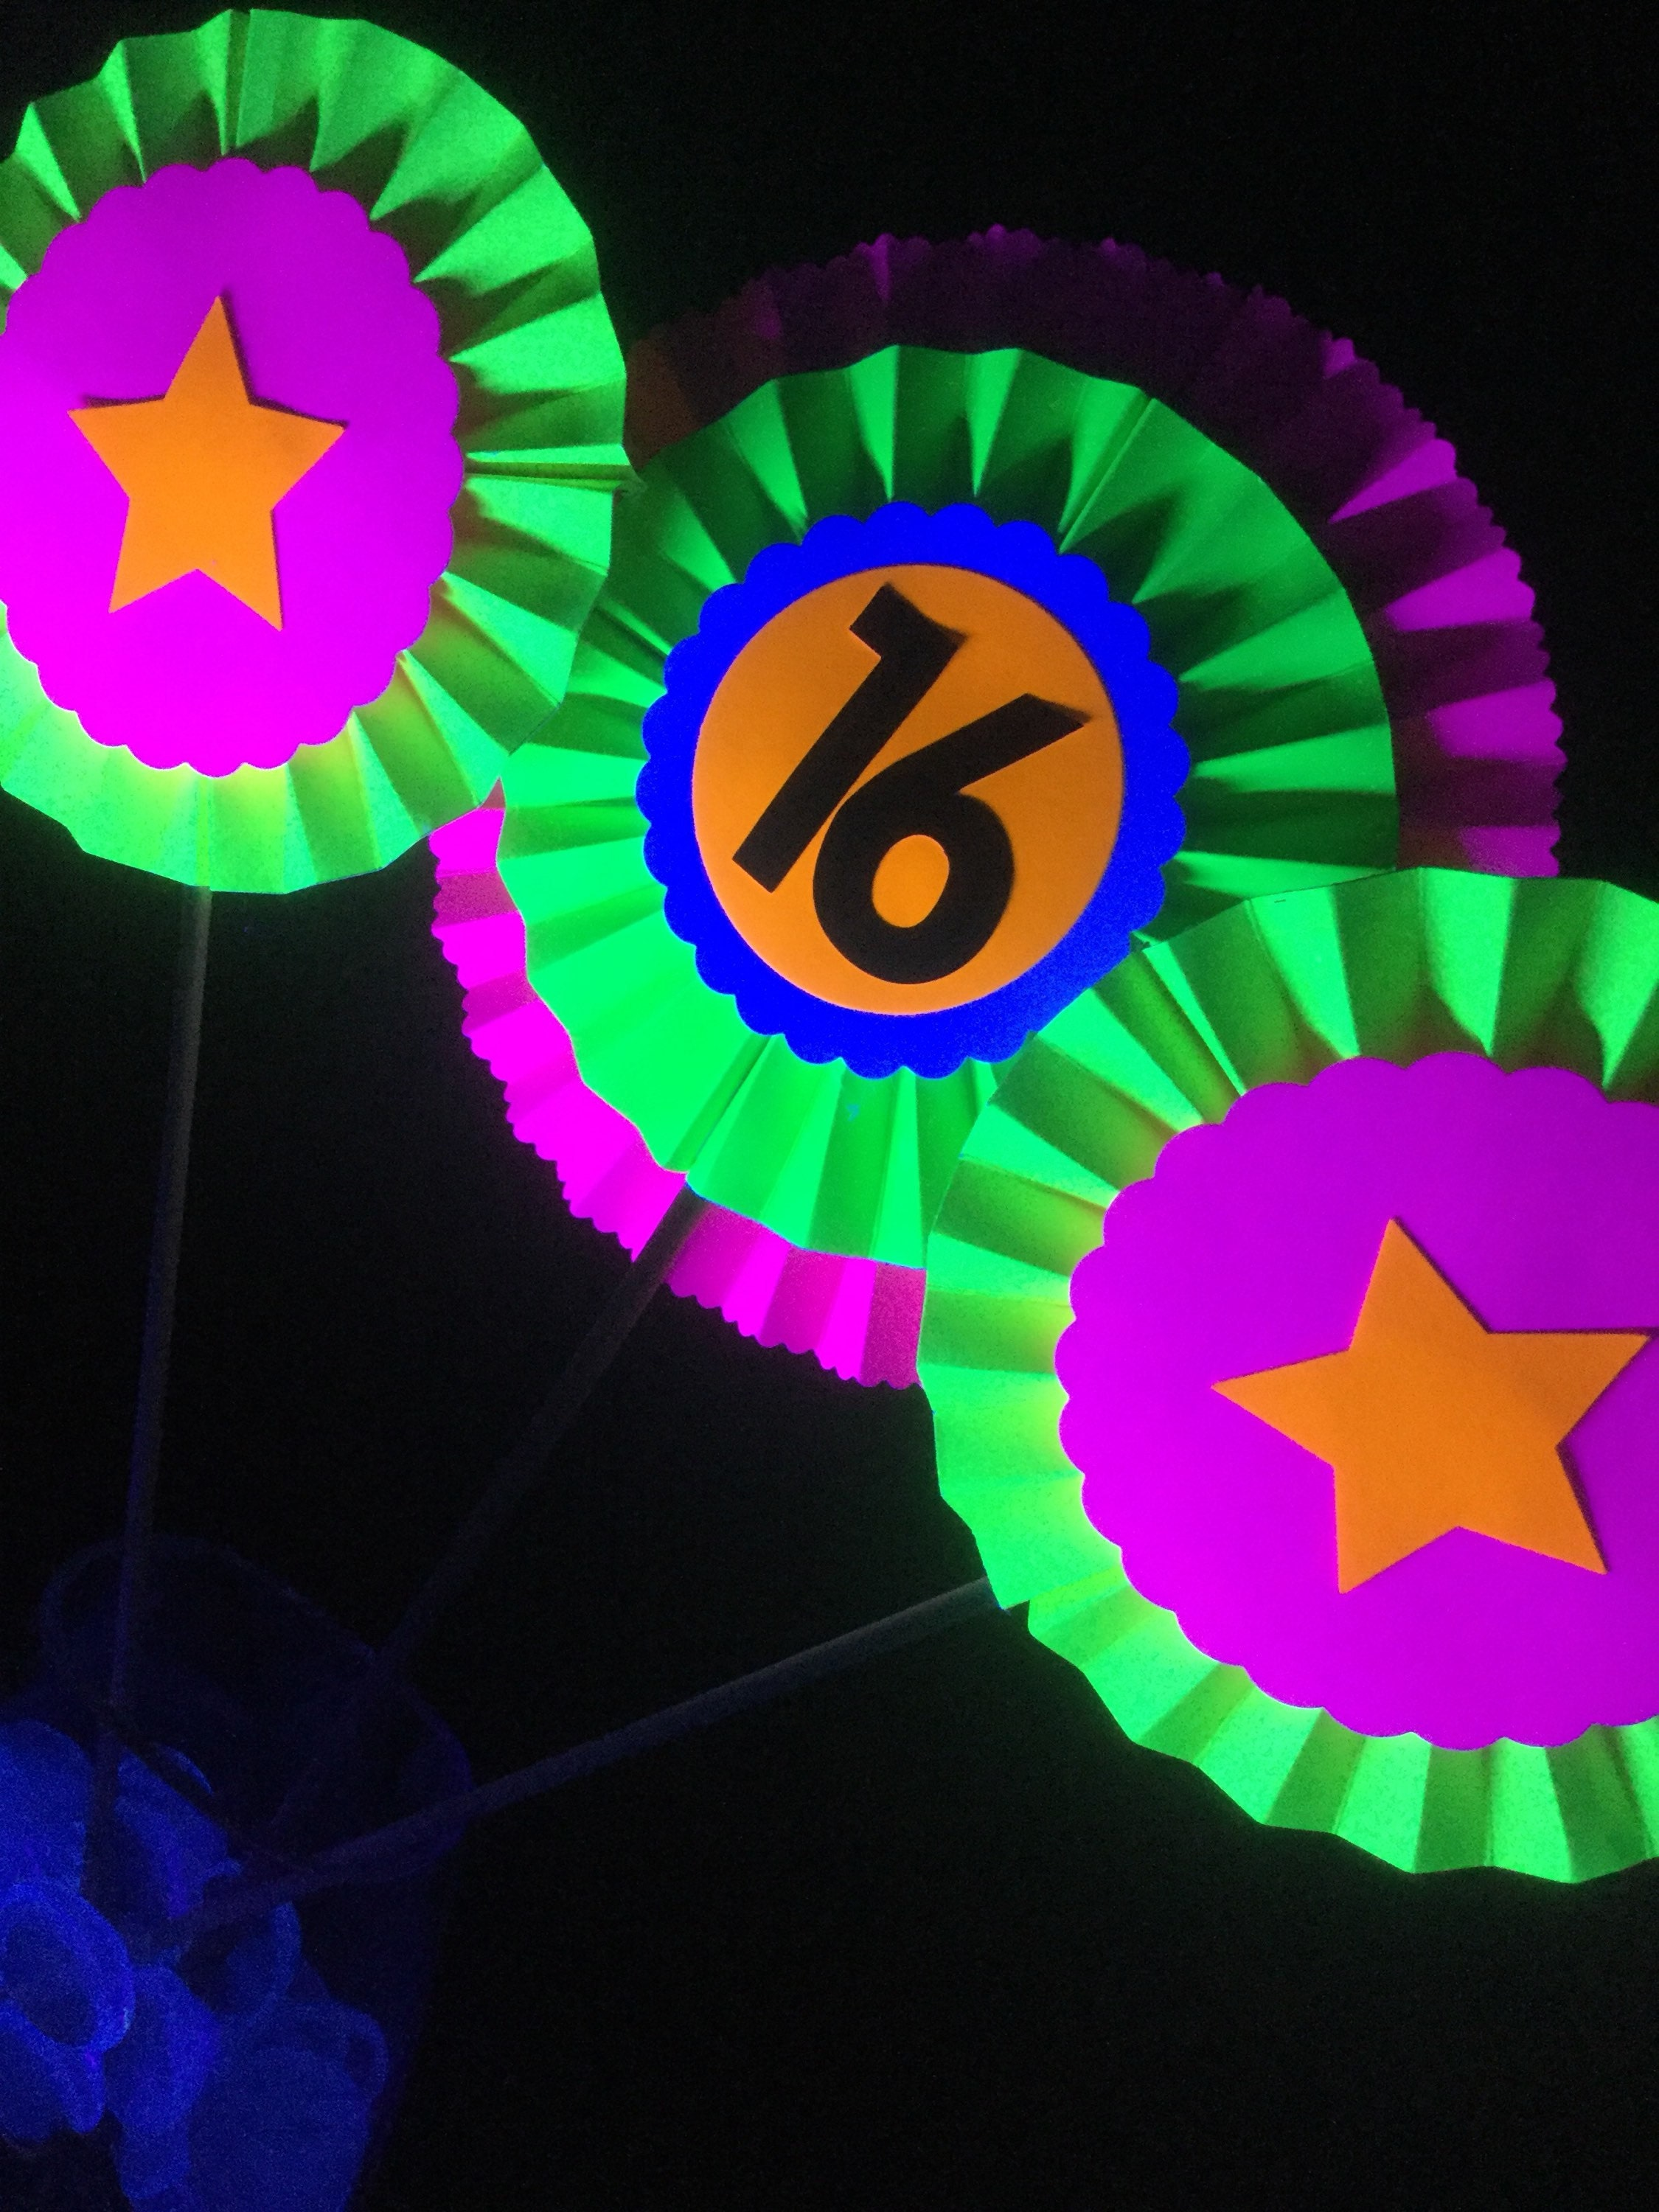 neon medallions on sticks with the number 16 for a centerpiece at a black light glow party